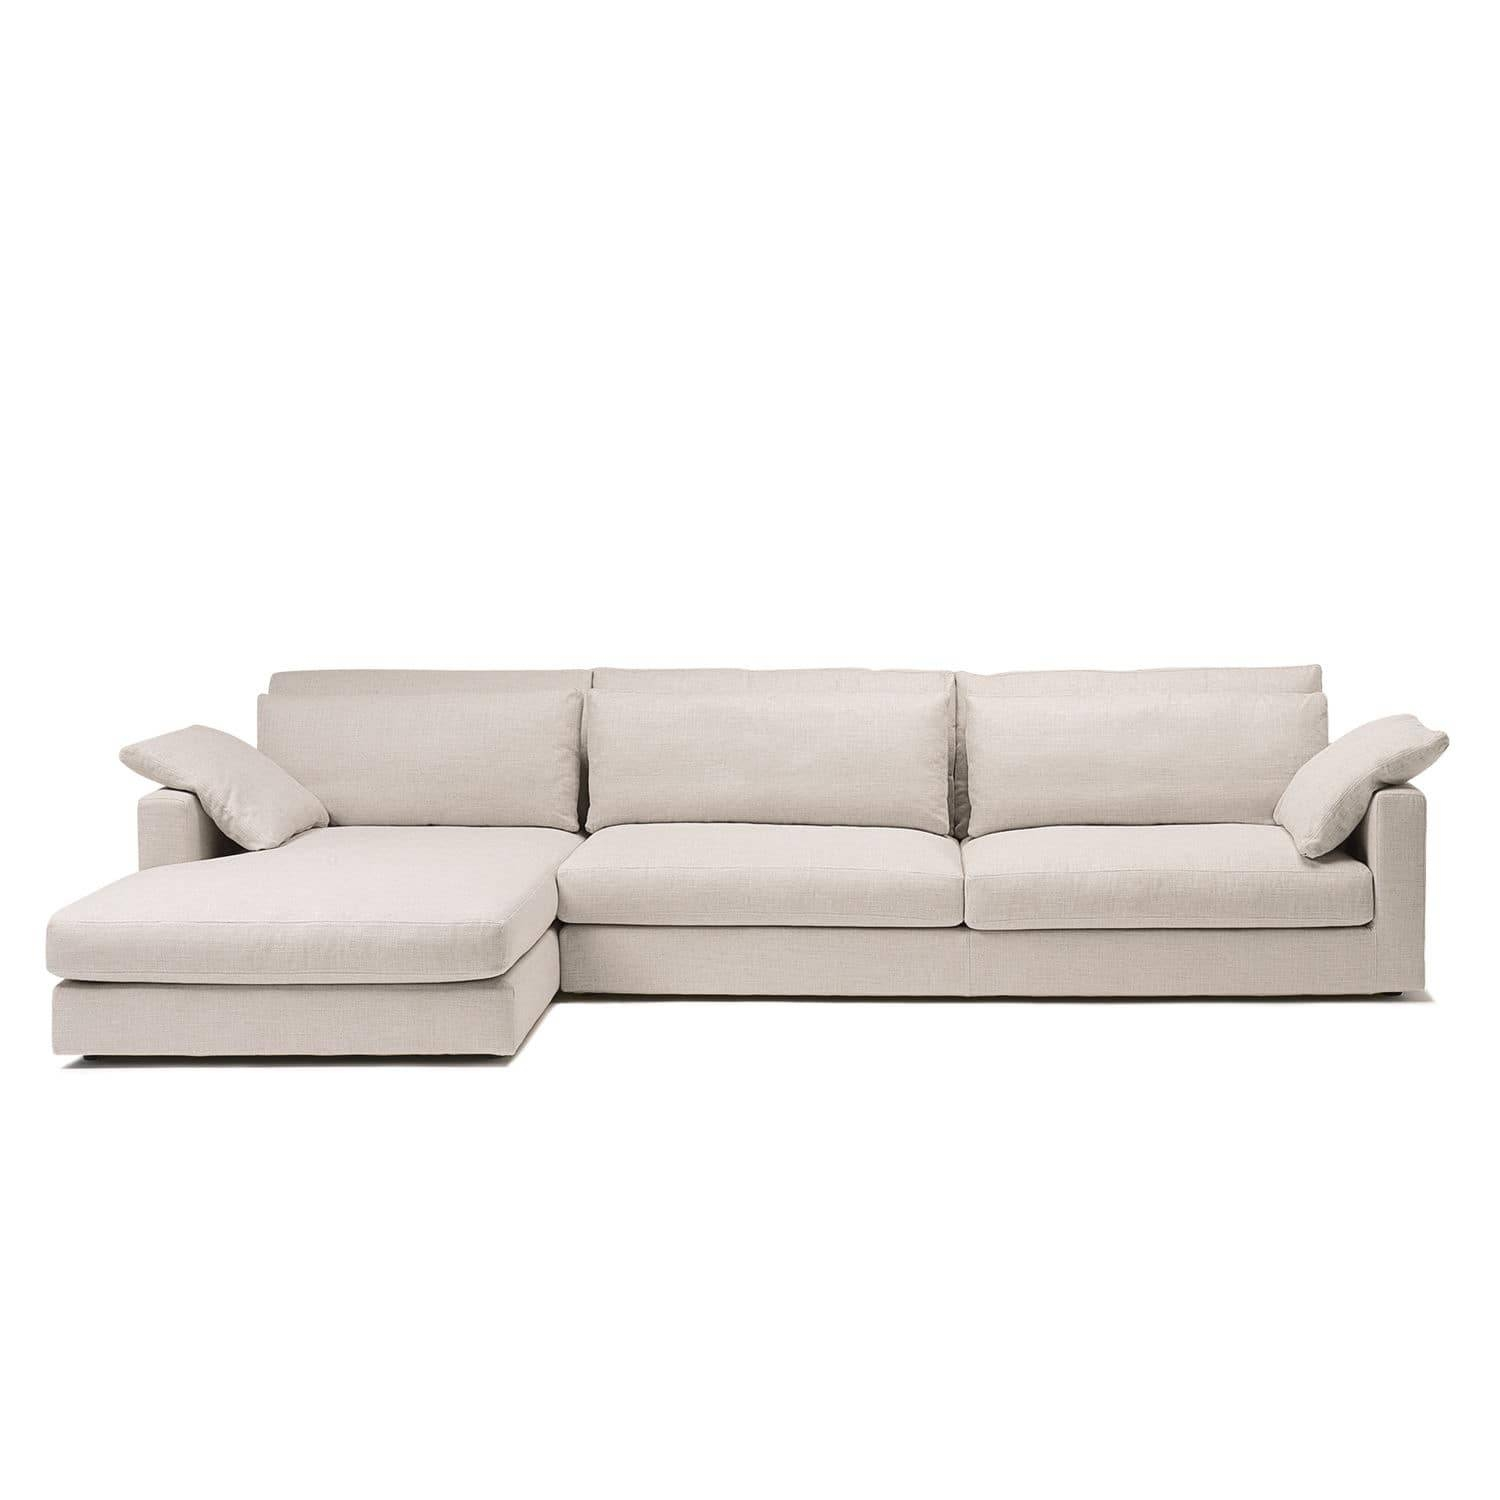 Modular Sofa / Contemporary / Fabric / Leather - Thomas - Berto regarding Small Modular Sofas (Image 12 of 25)